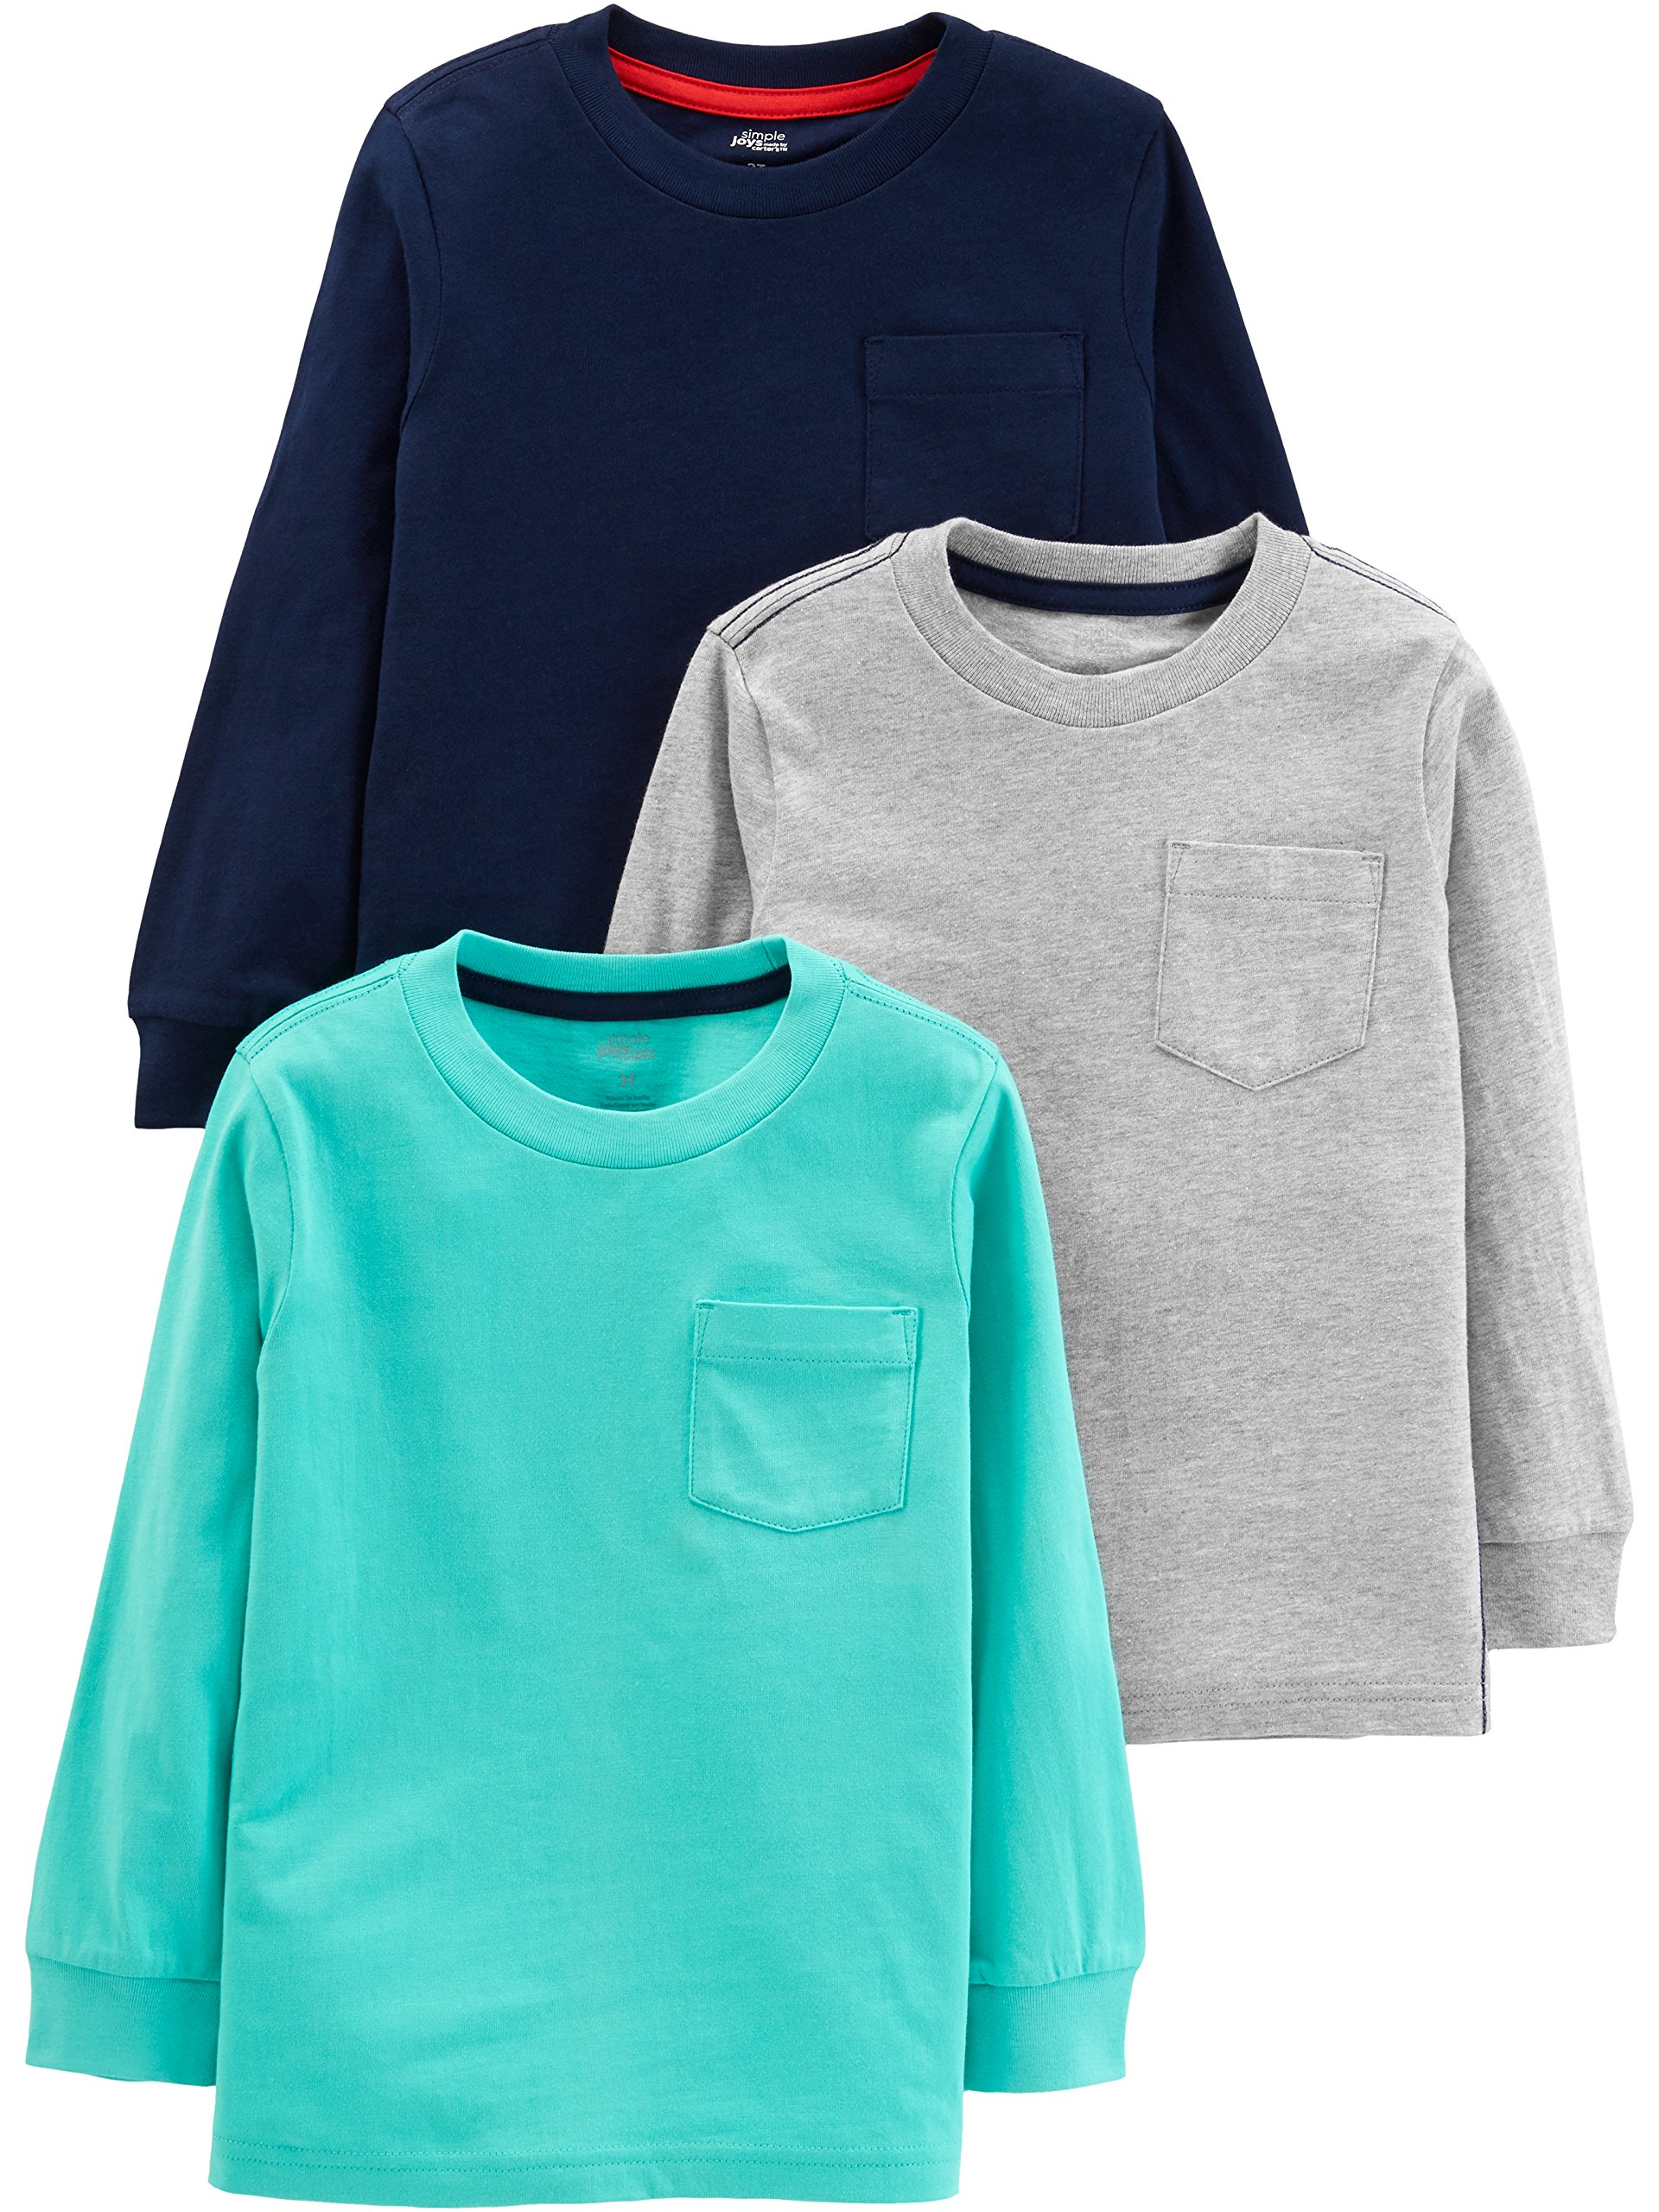 Simple Joys by Carter's Boys' Toddler 3-Pack Solid Pocket Long-Sleeve Tee Shirts, Gray/Blue/Navy, 3T by Simple Joys by Carter's